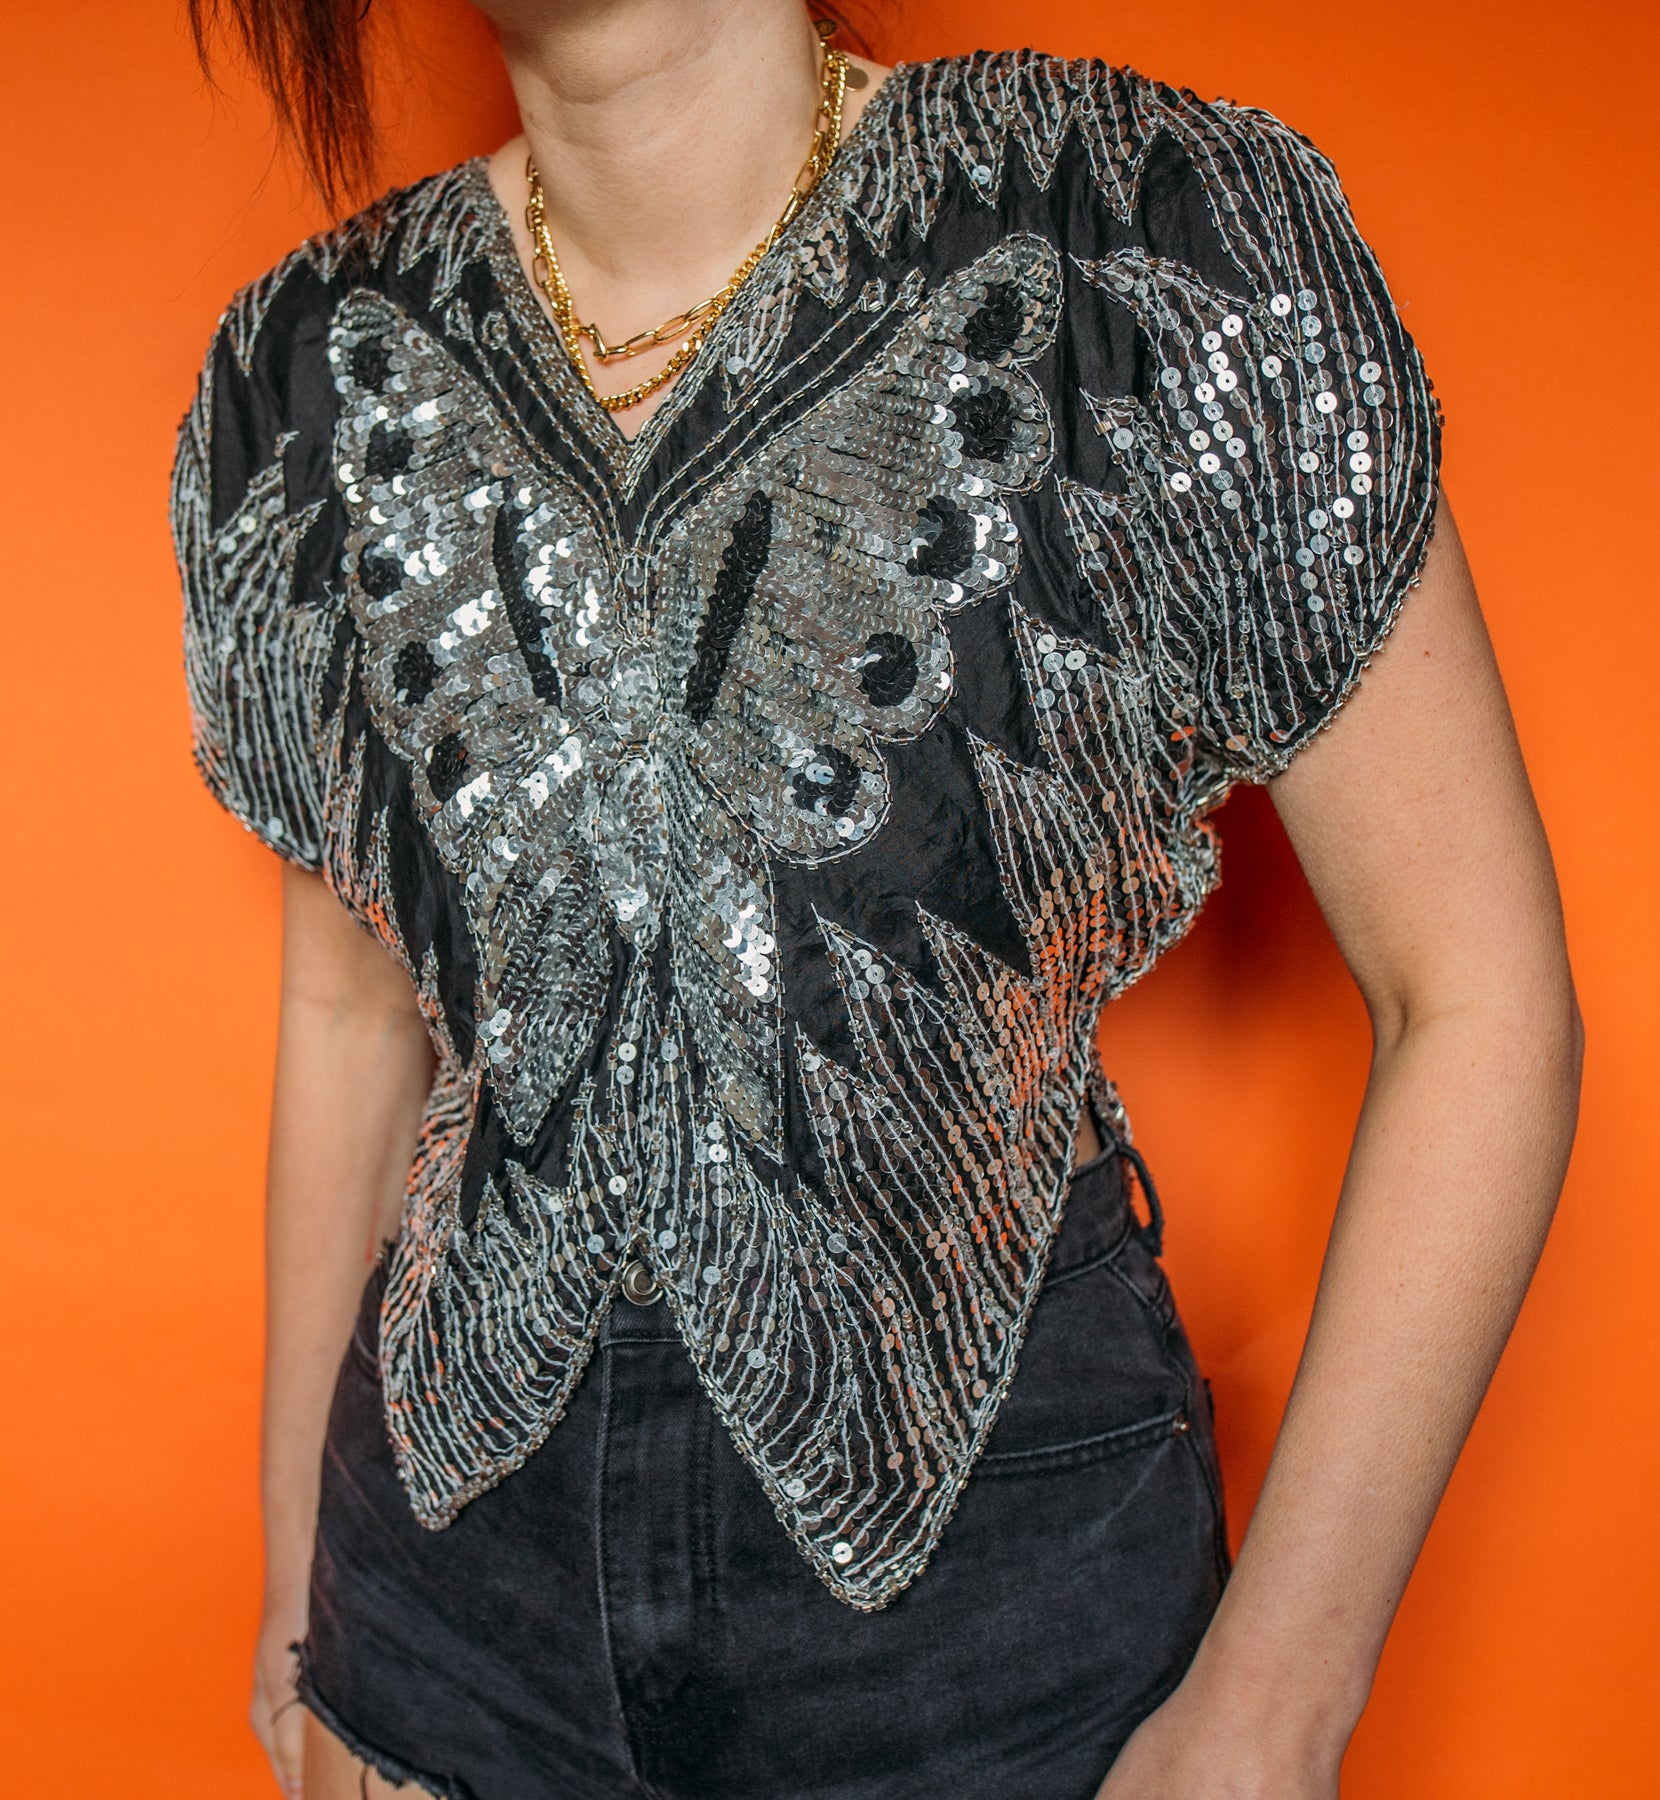 Vintage 80's Sequin Butterfly Top XS/S